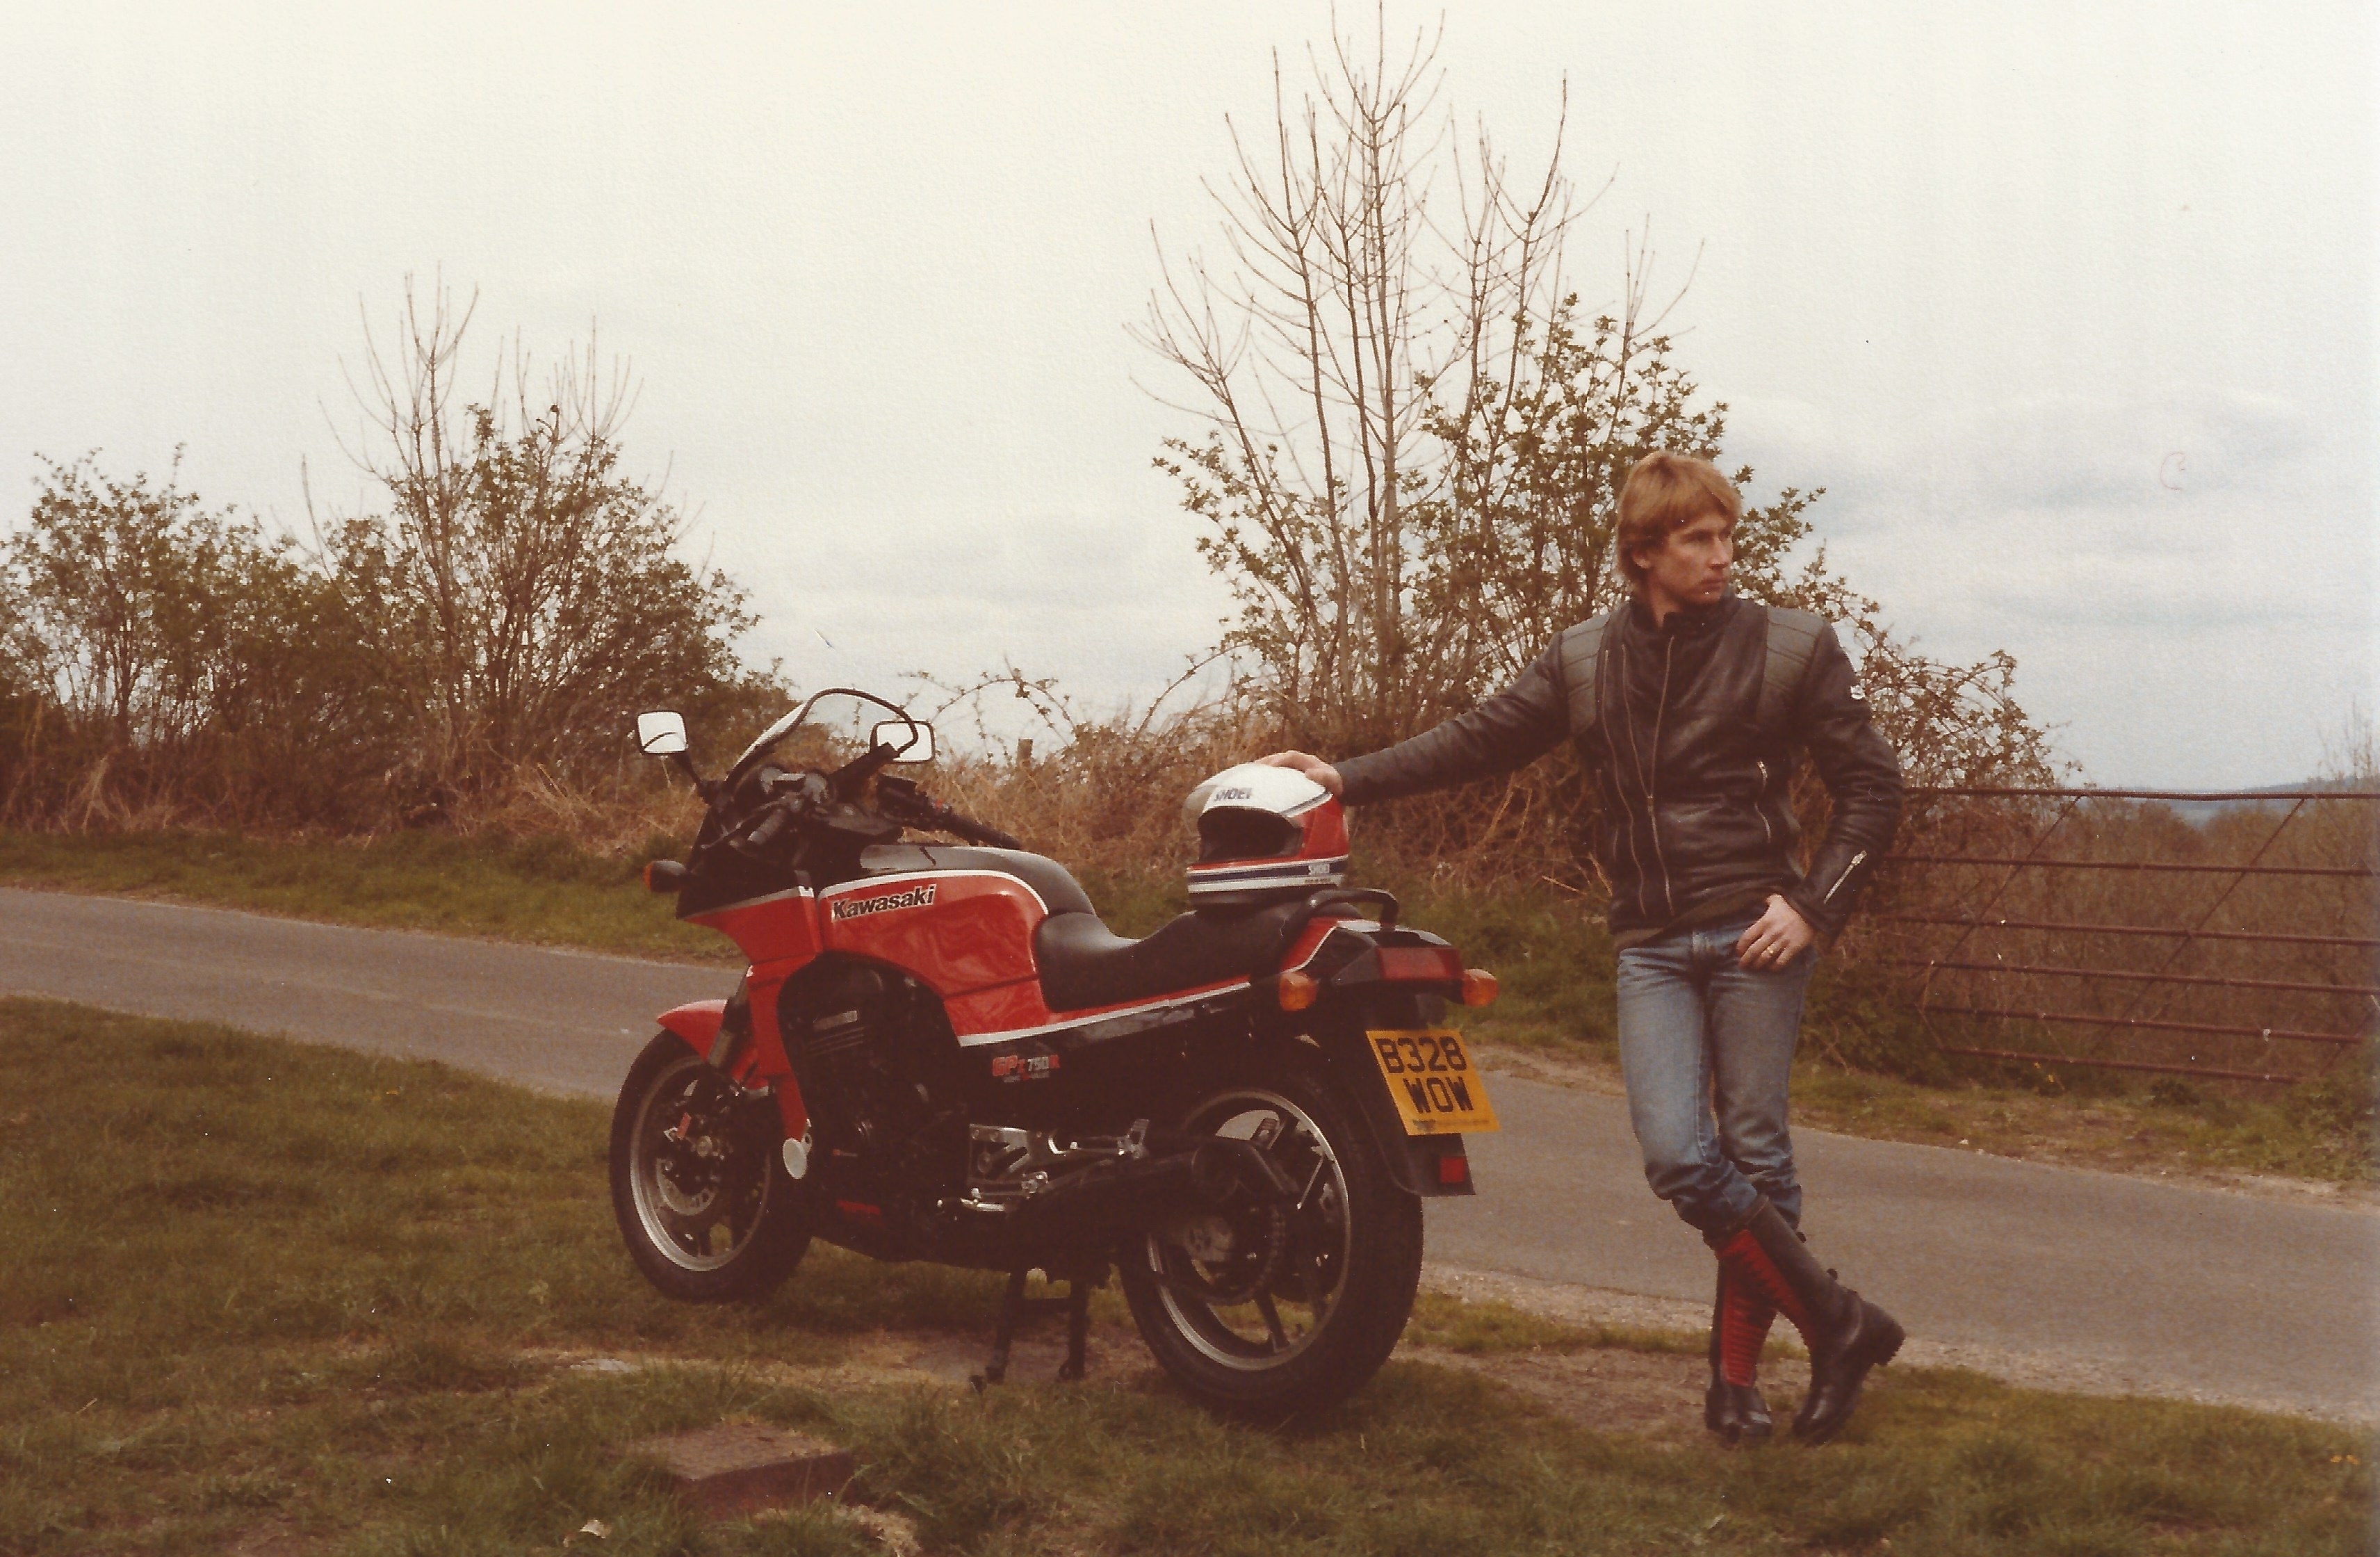 Vince Poynter, in full motorbike clothing and boots, standing at the rear of his black and red Kawasaki GPz750R motorcycle, which is stood on it's centre stand on a grass mound